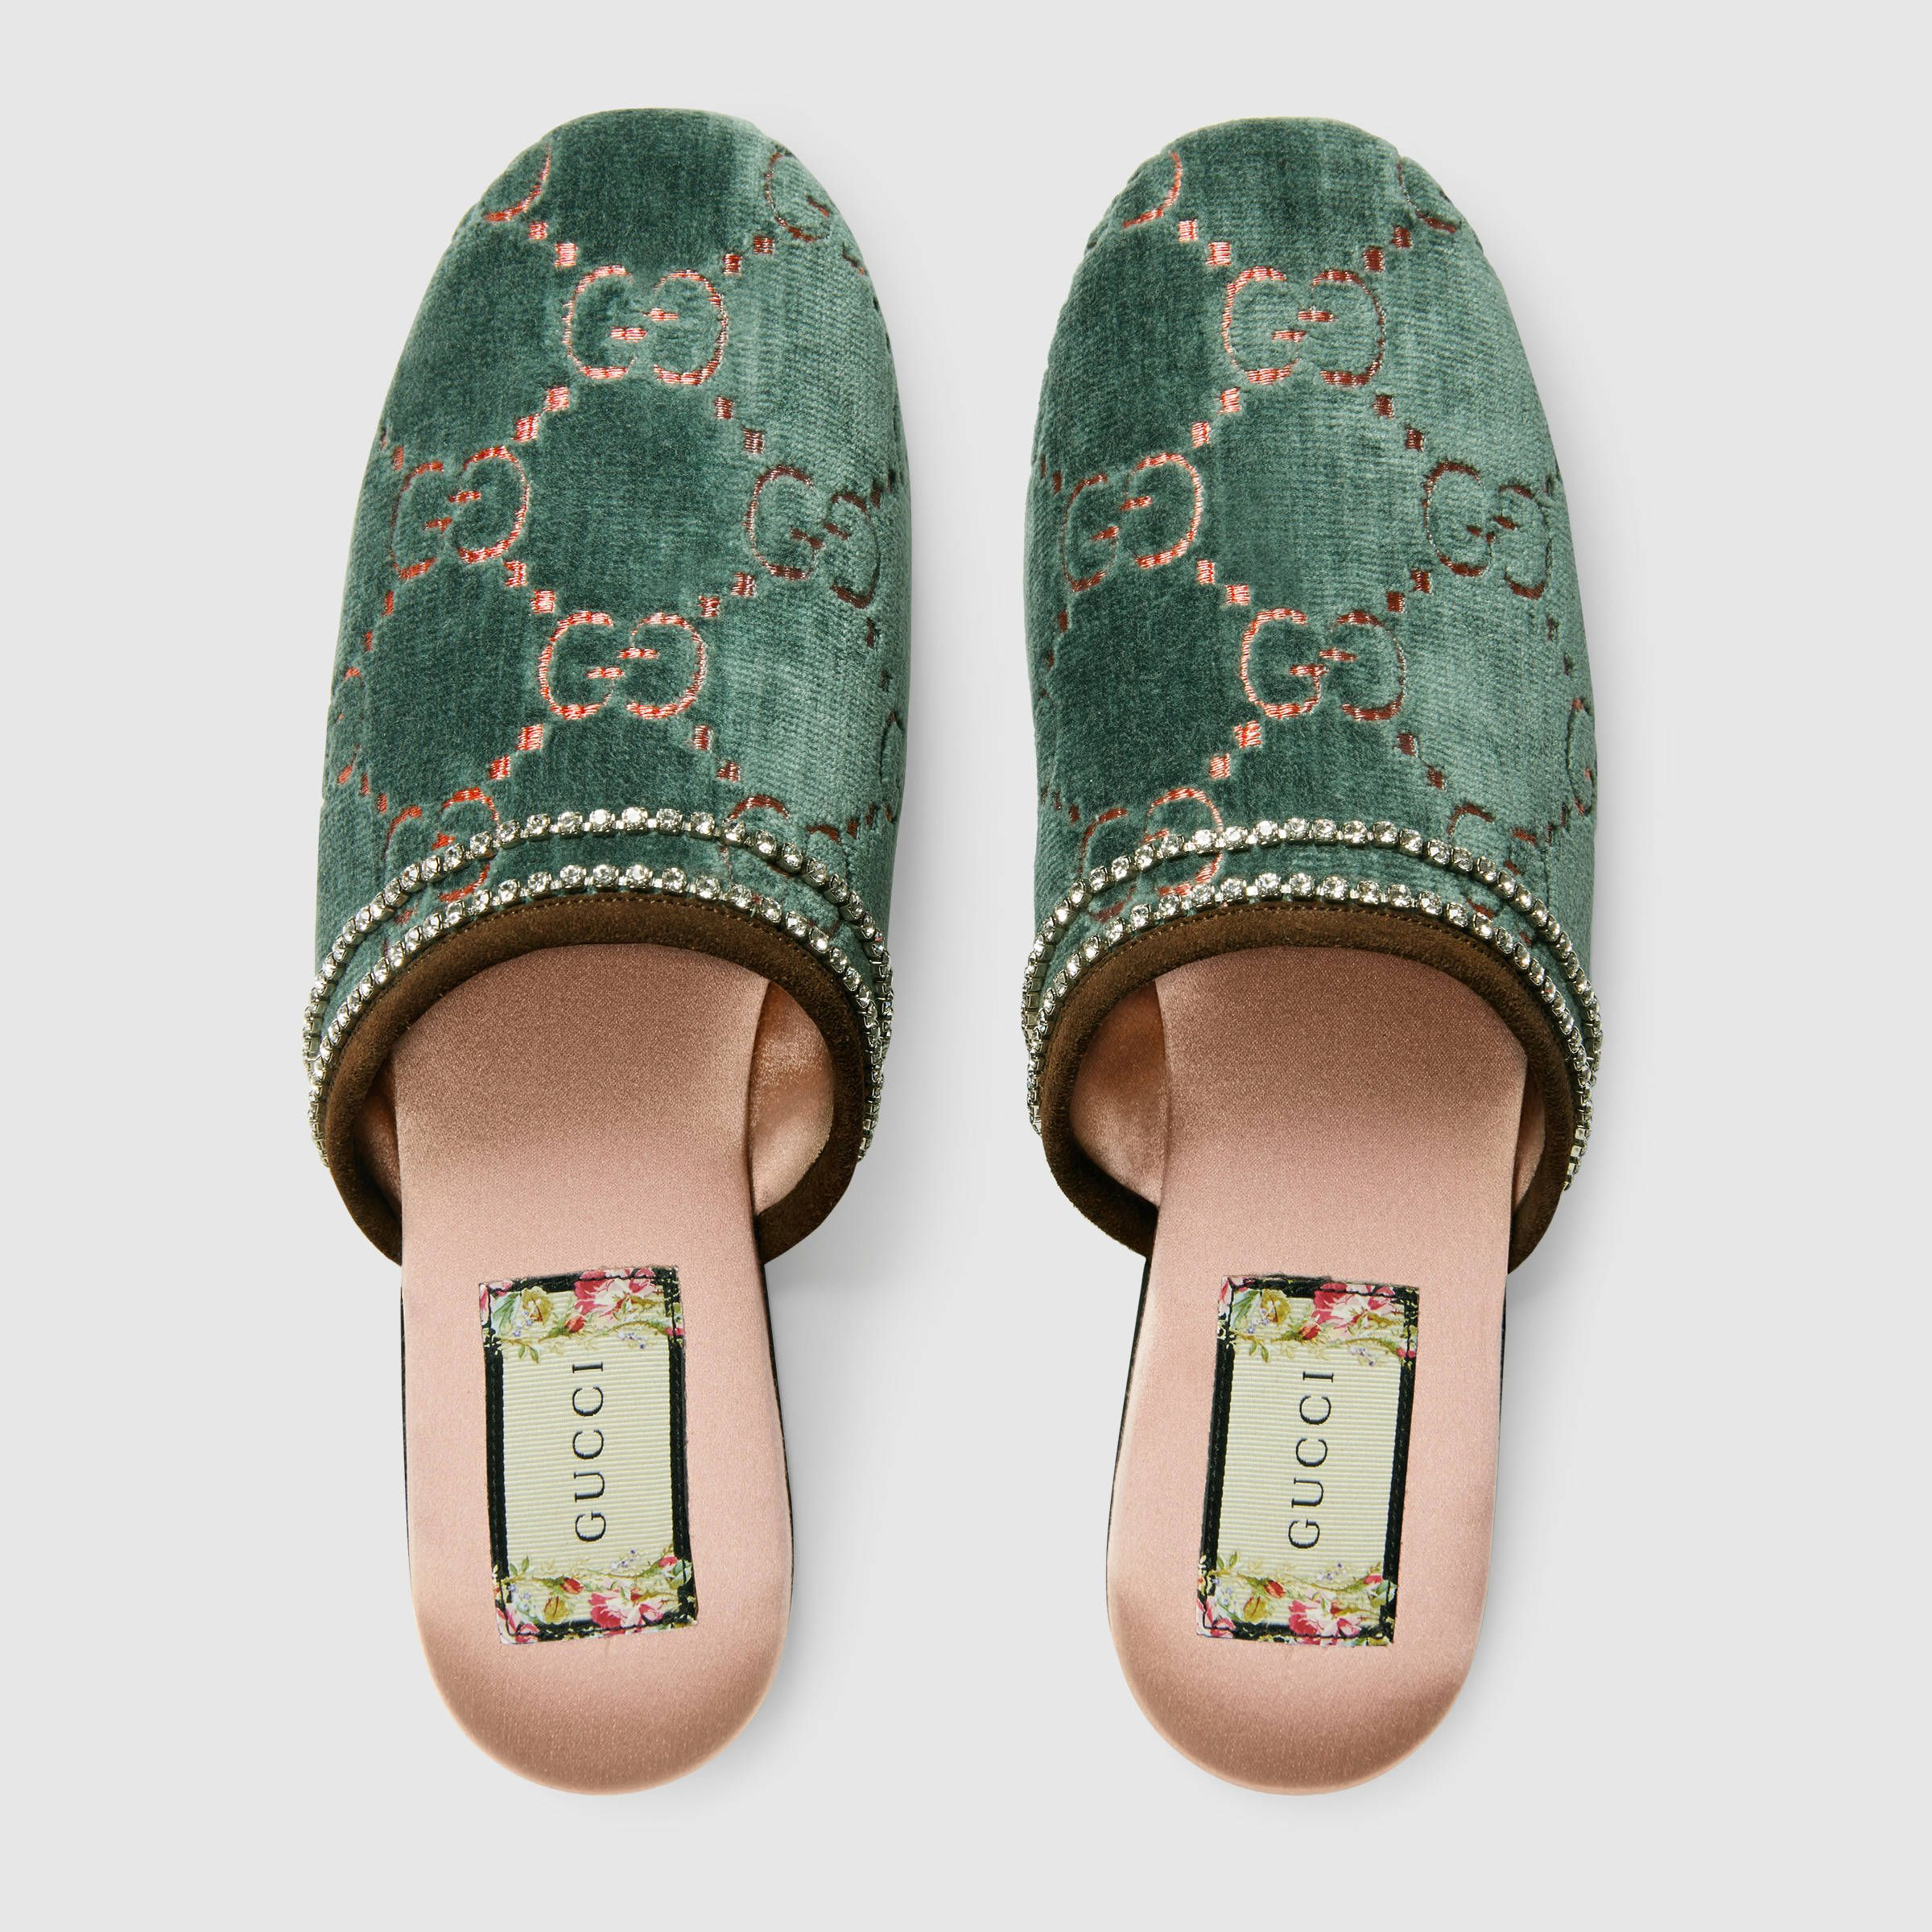 a675230840f GG velvet slipper - Gucci Women s Slippers   Mules 5124239JT704261 ...